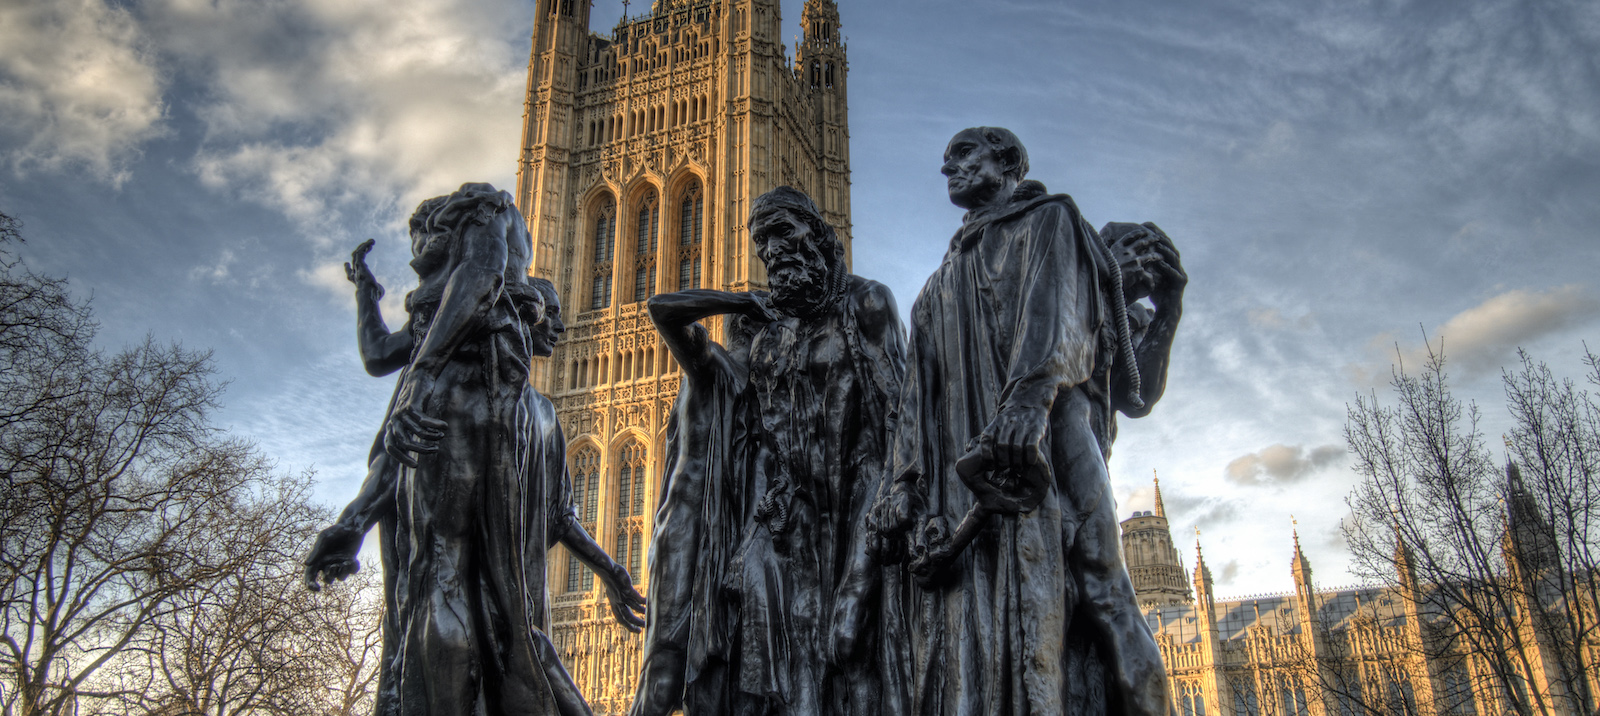 The Burghers of Calais, London (Photo: Neil Howard/ Flickr)